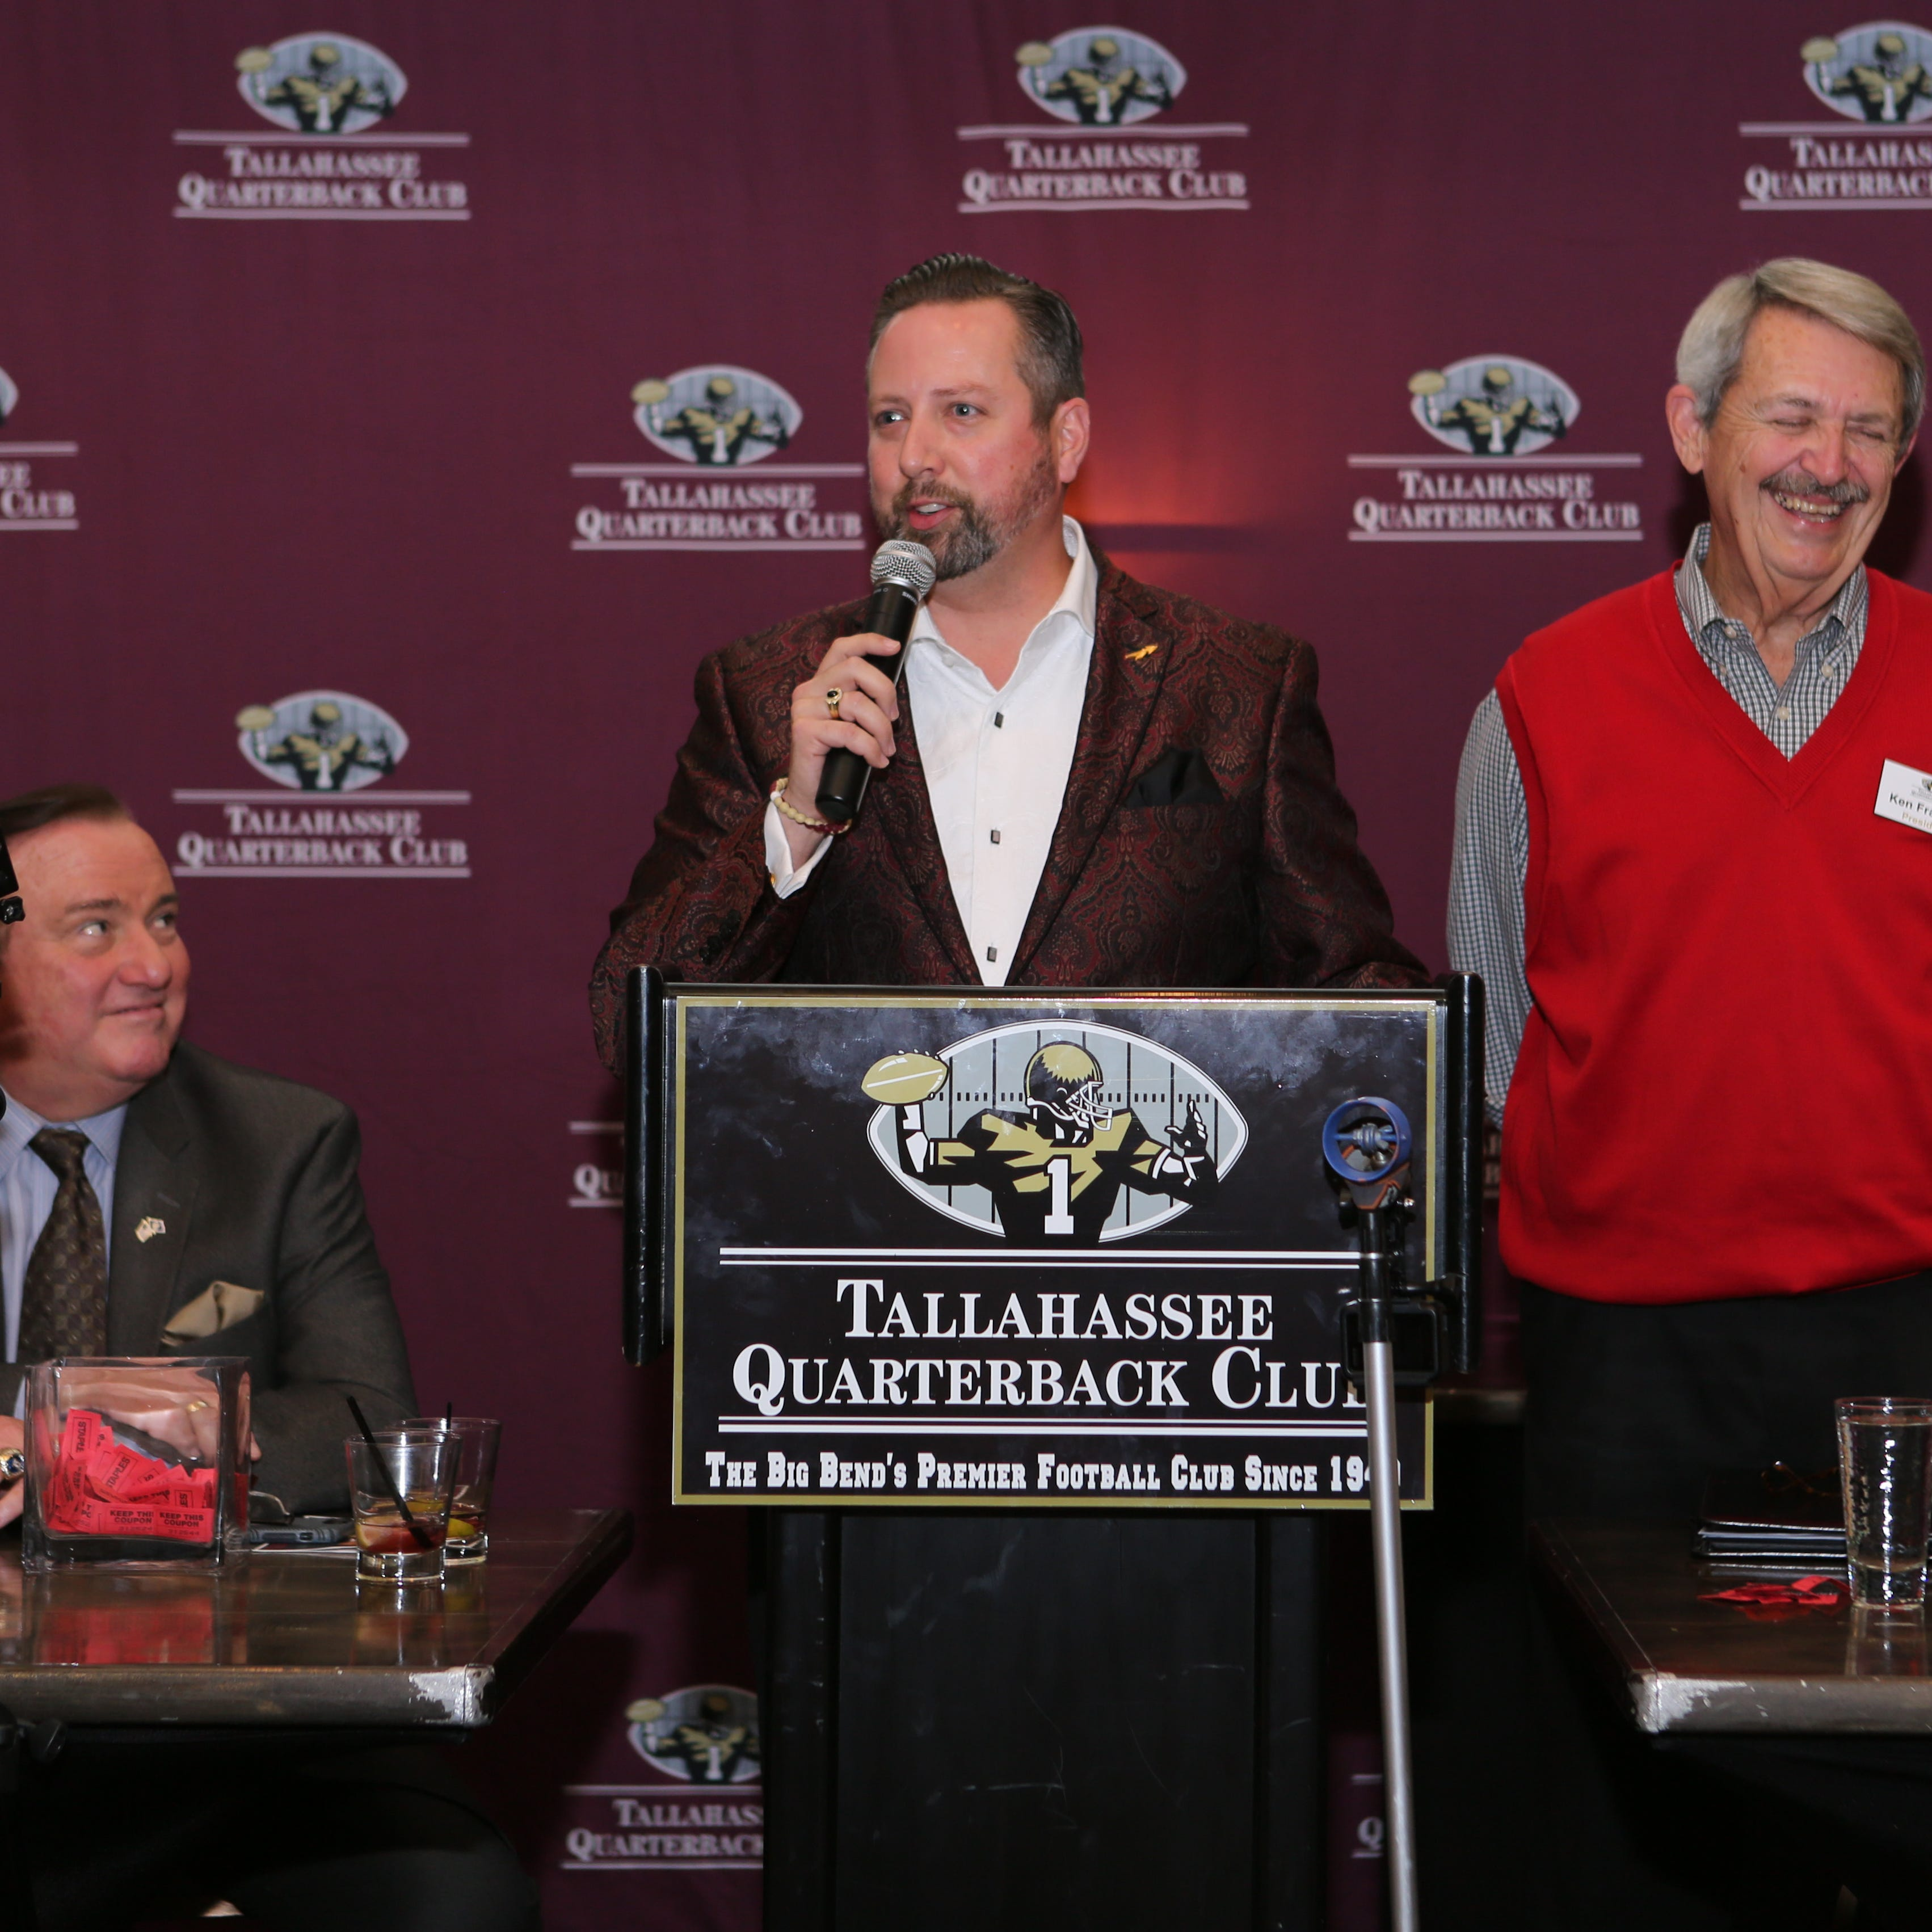 Tallahassee Quarterback Club president Hugh Tomlinson (center) addresses the crowd during the year-end jamboree with Ken Franklin (right). Tim Brando (left) was the guest speaker.